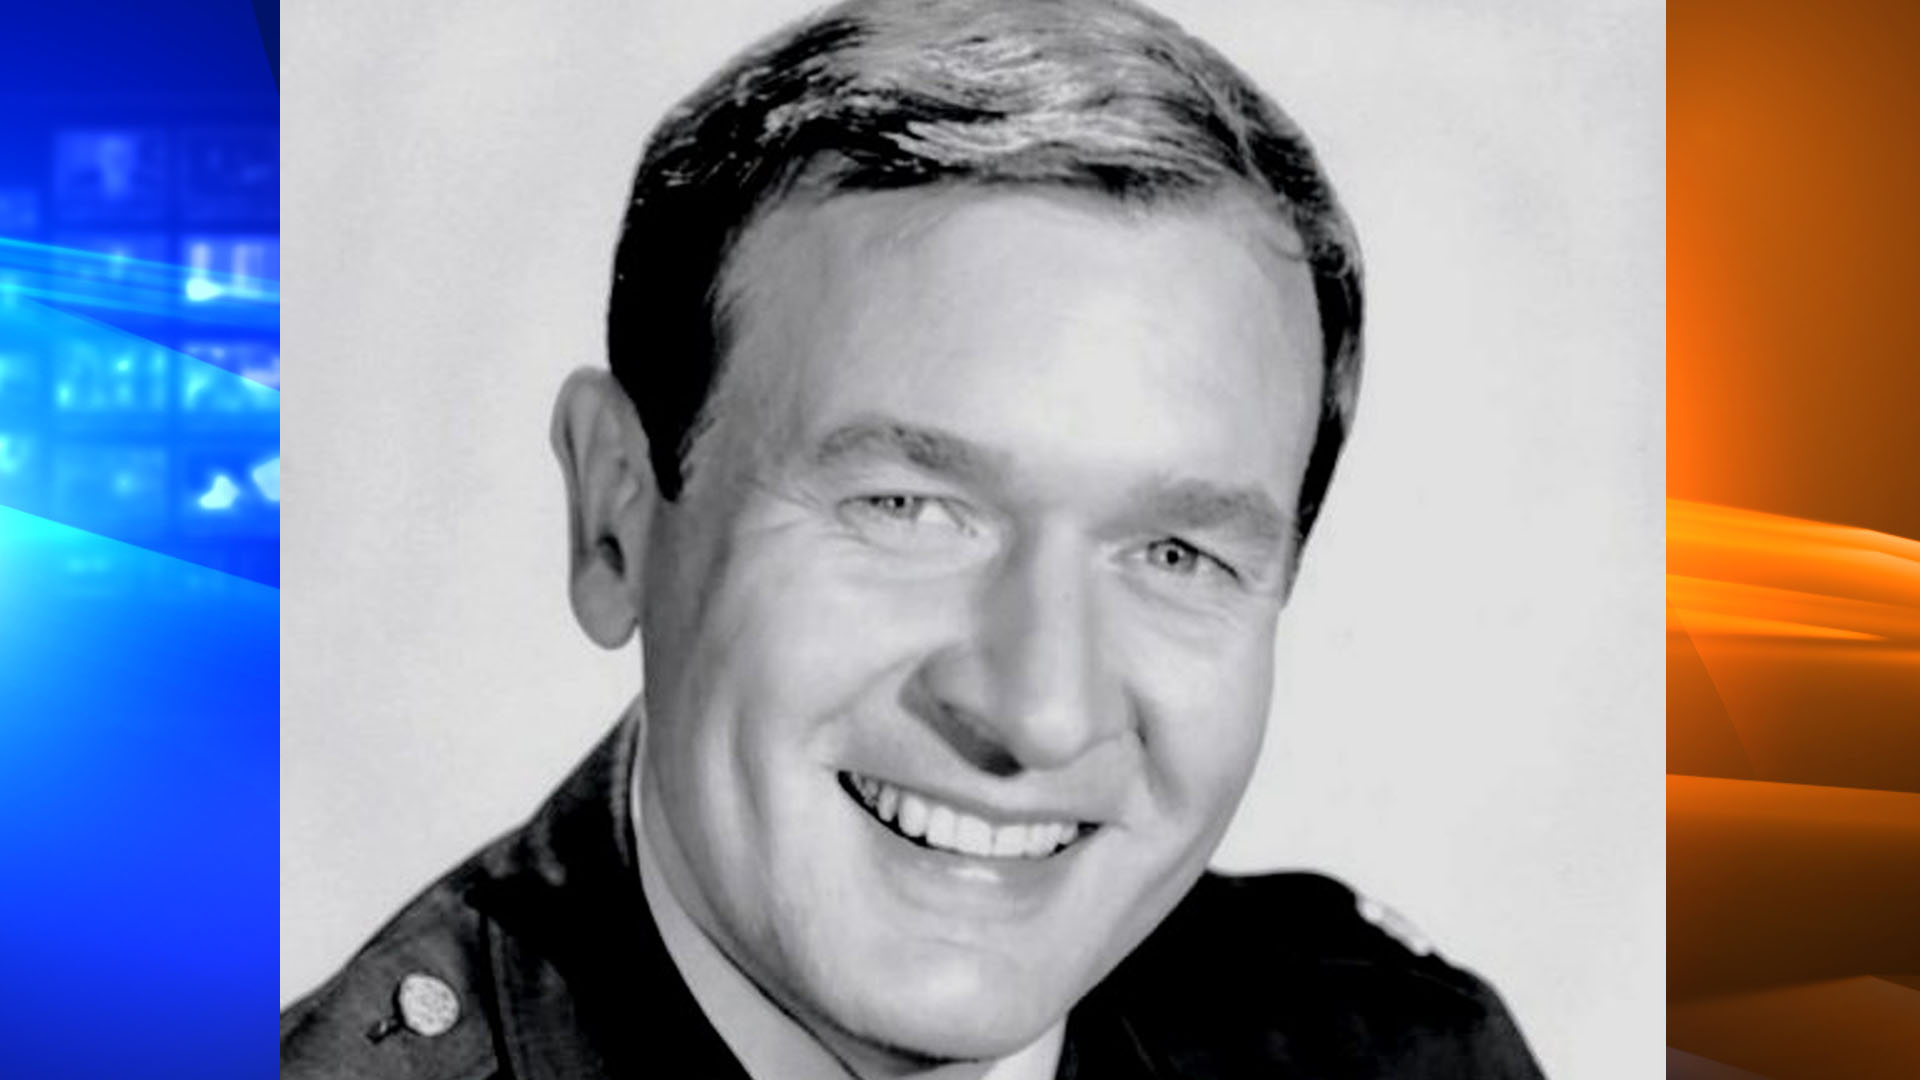 An undated photo shows actor Bill Daily. (Credit: NBC Television/Wikimedia Commons)